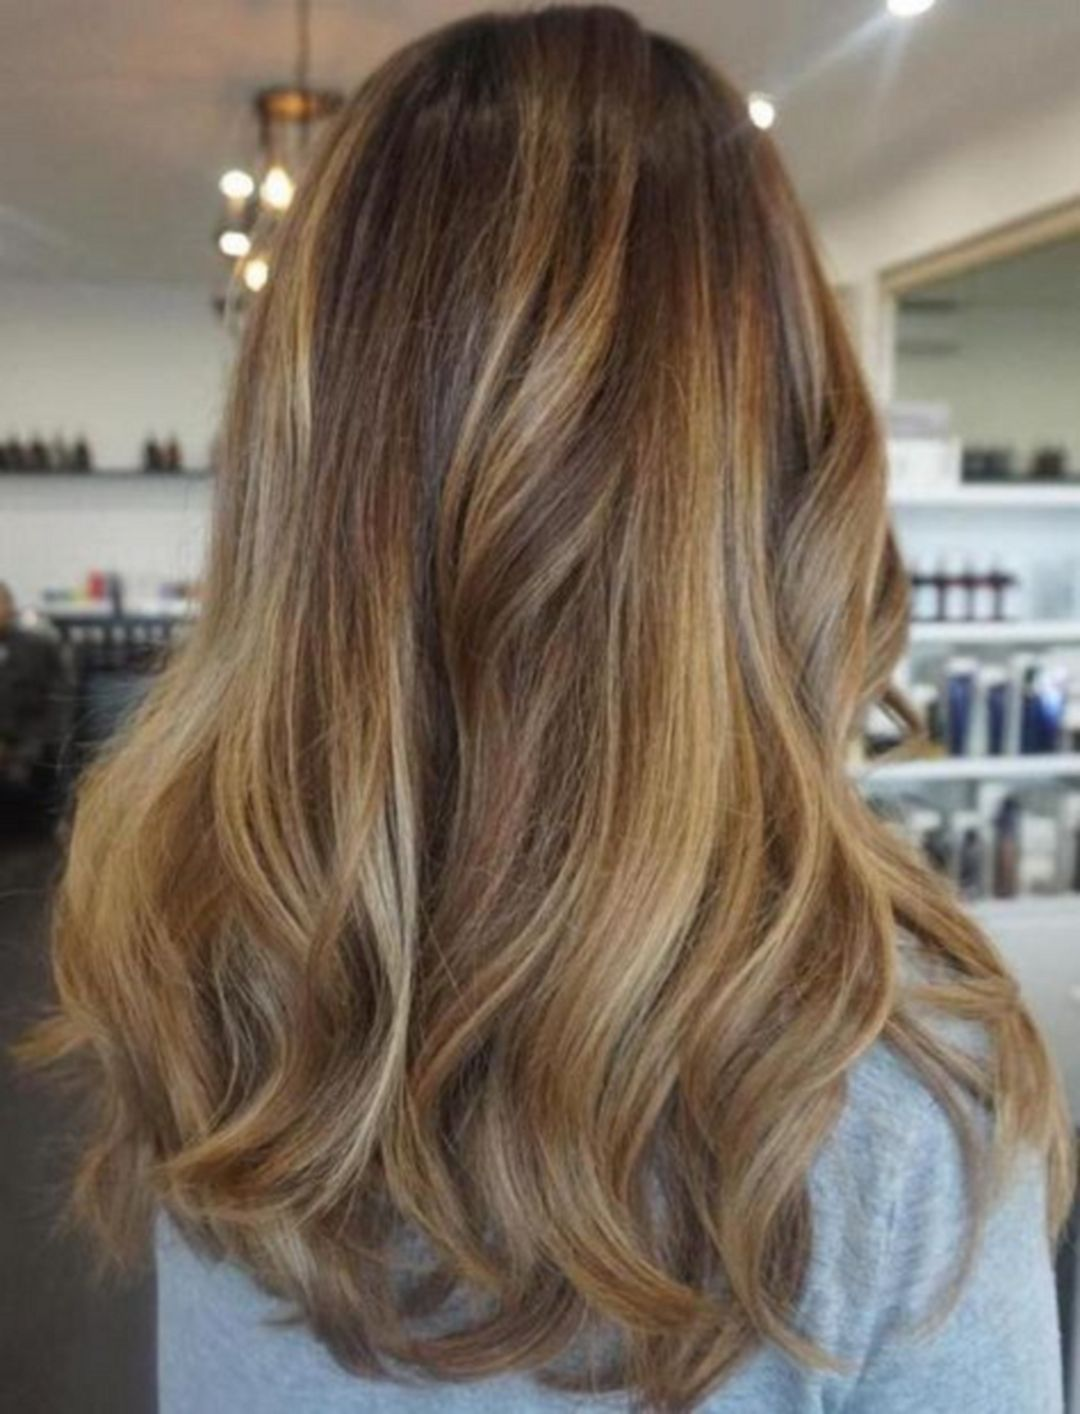 44 Stylish Blonde Hairstyles Highlights For Women Blonde